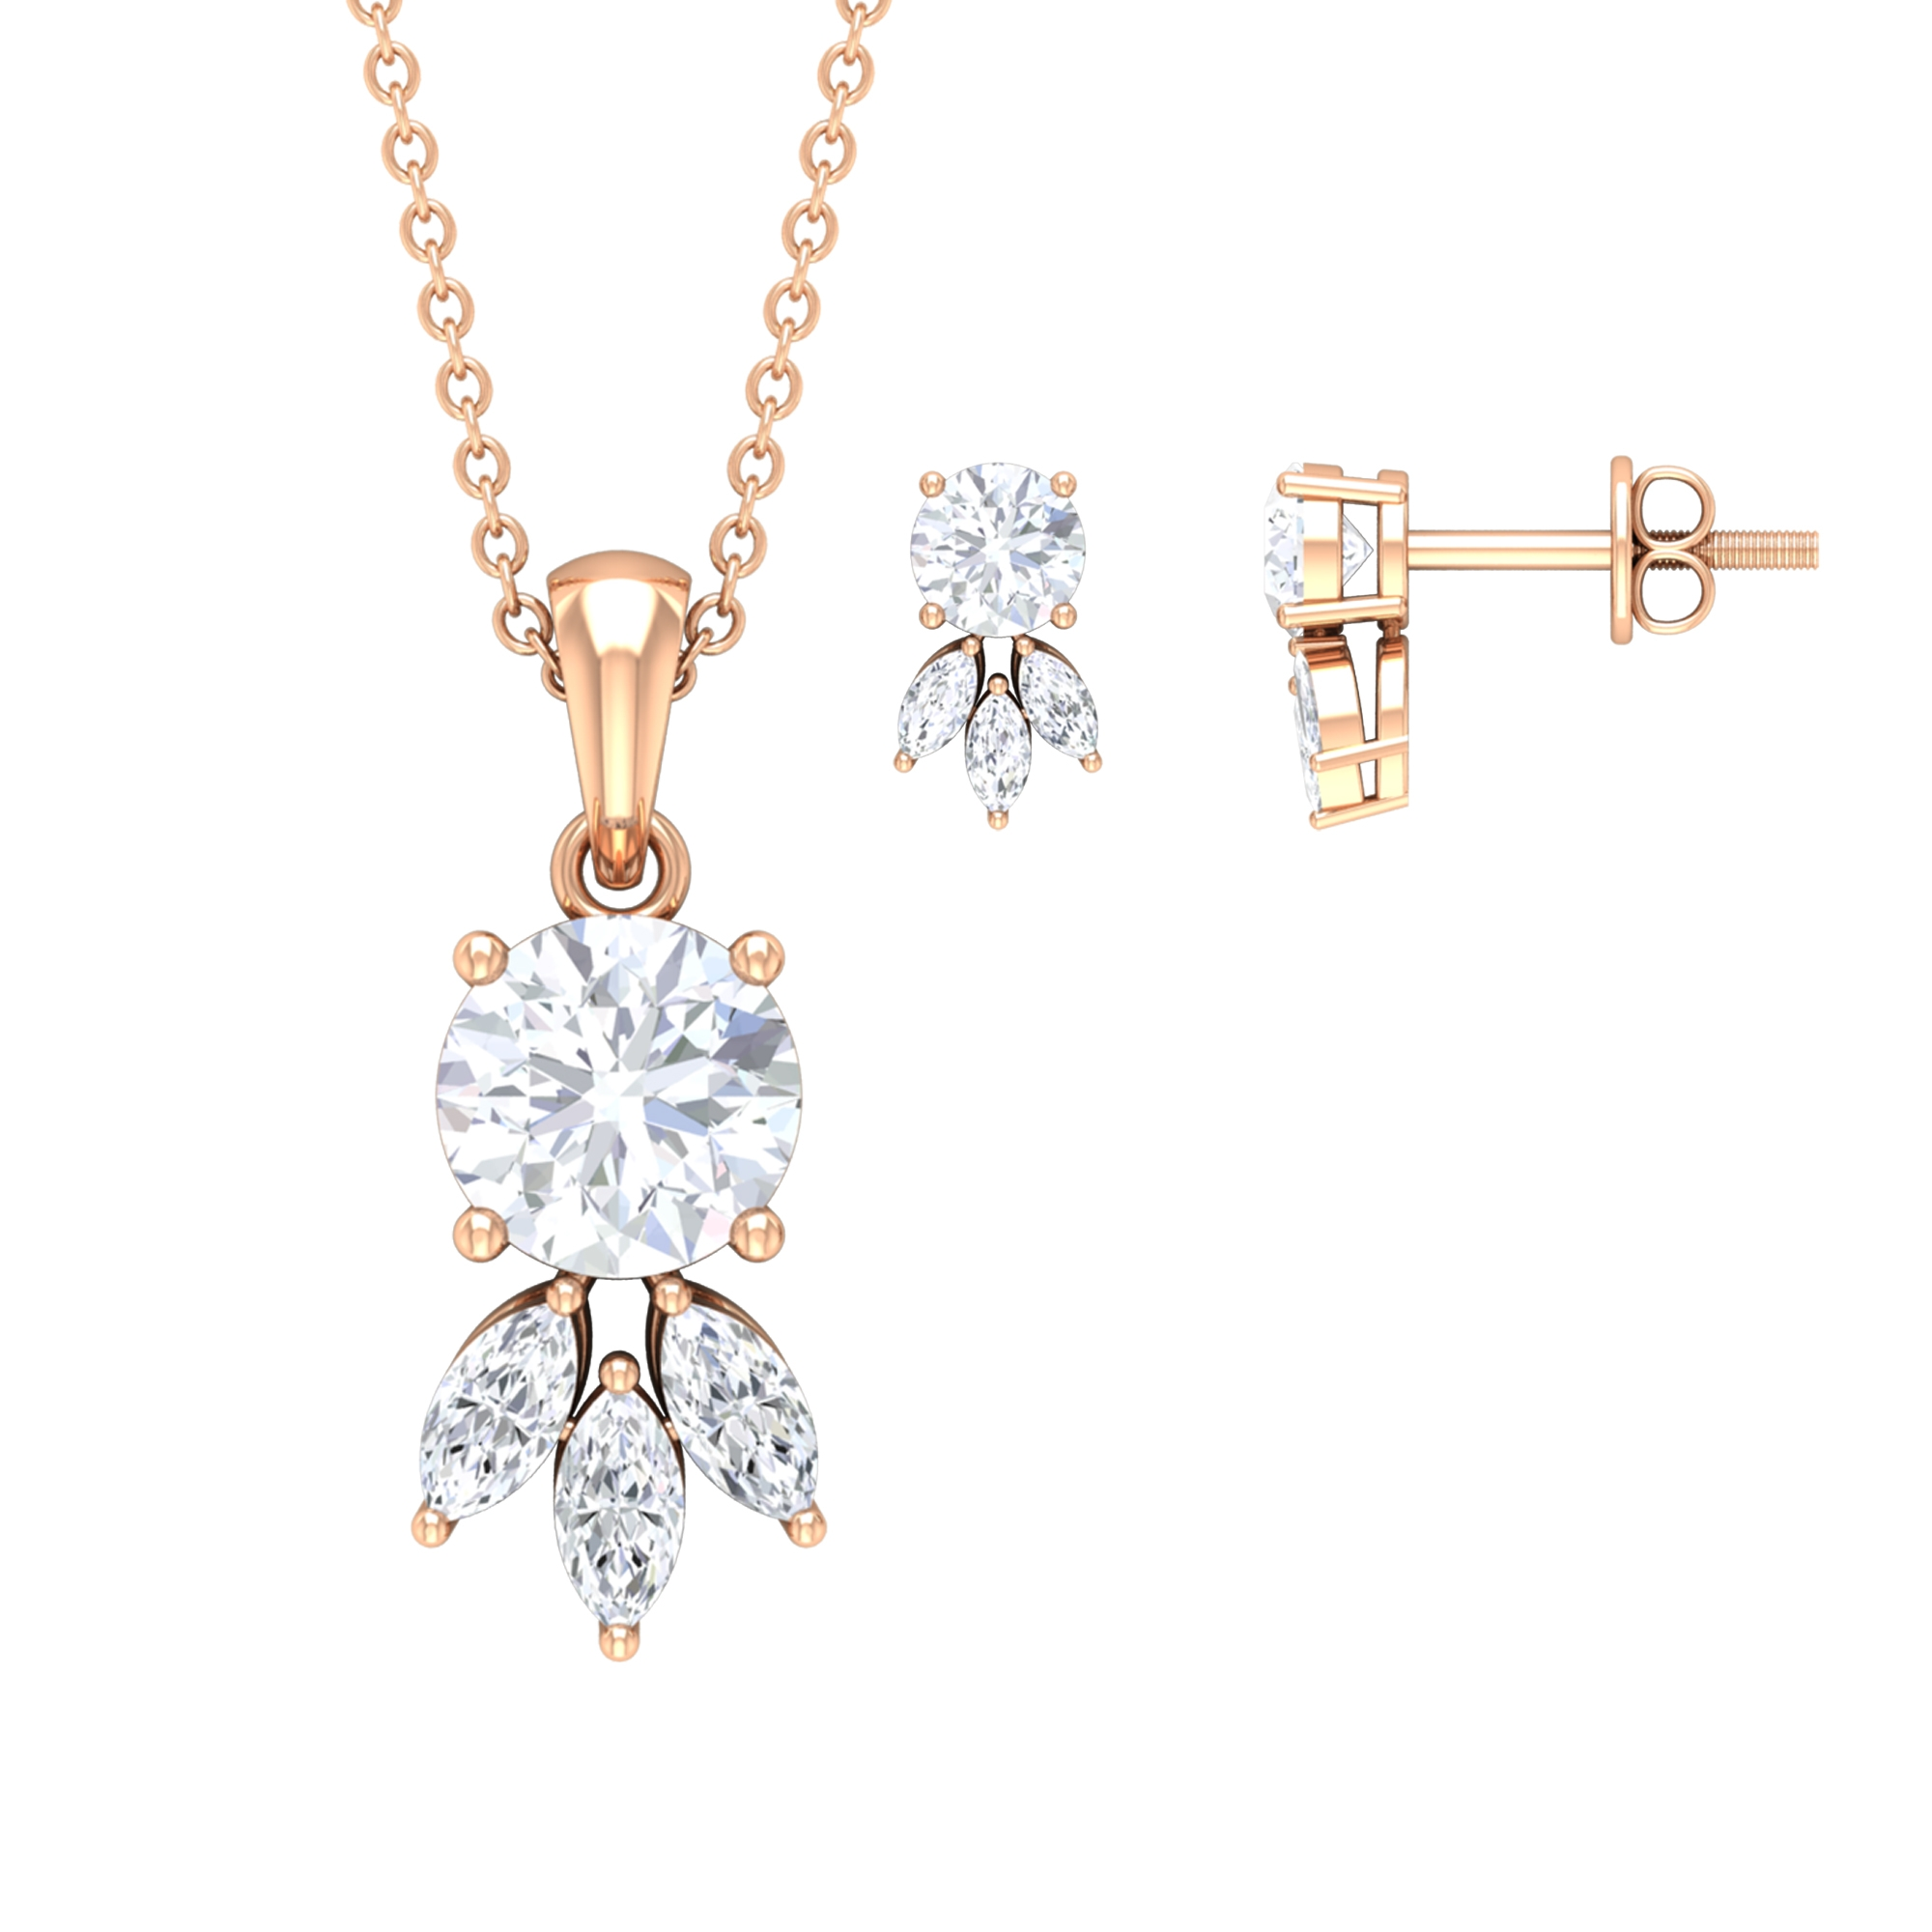 2.50 CT Dainty Moissanite Solitaire and Diamond Pendant Earring Set